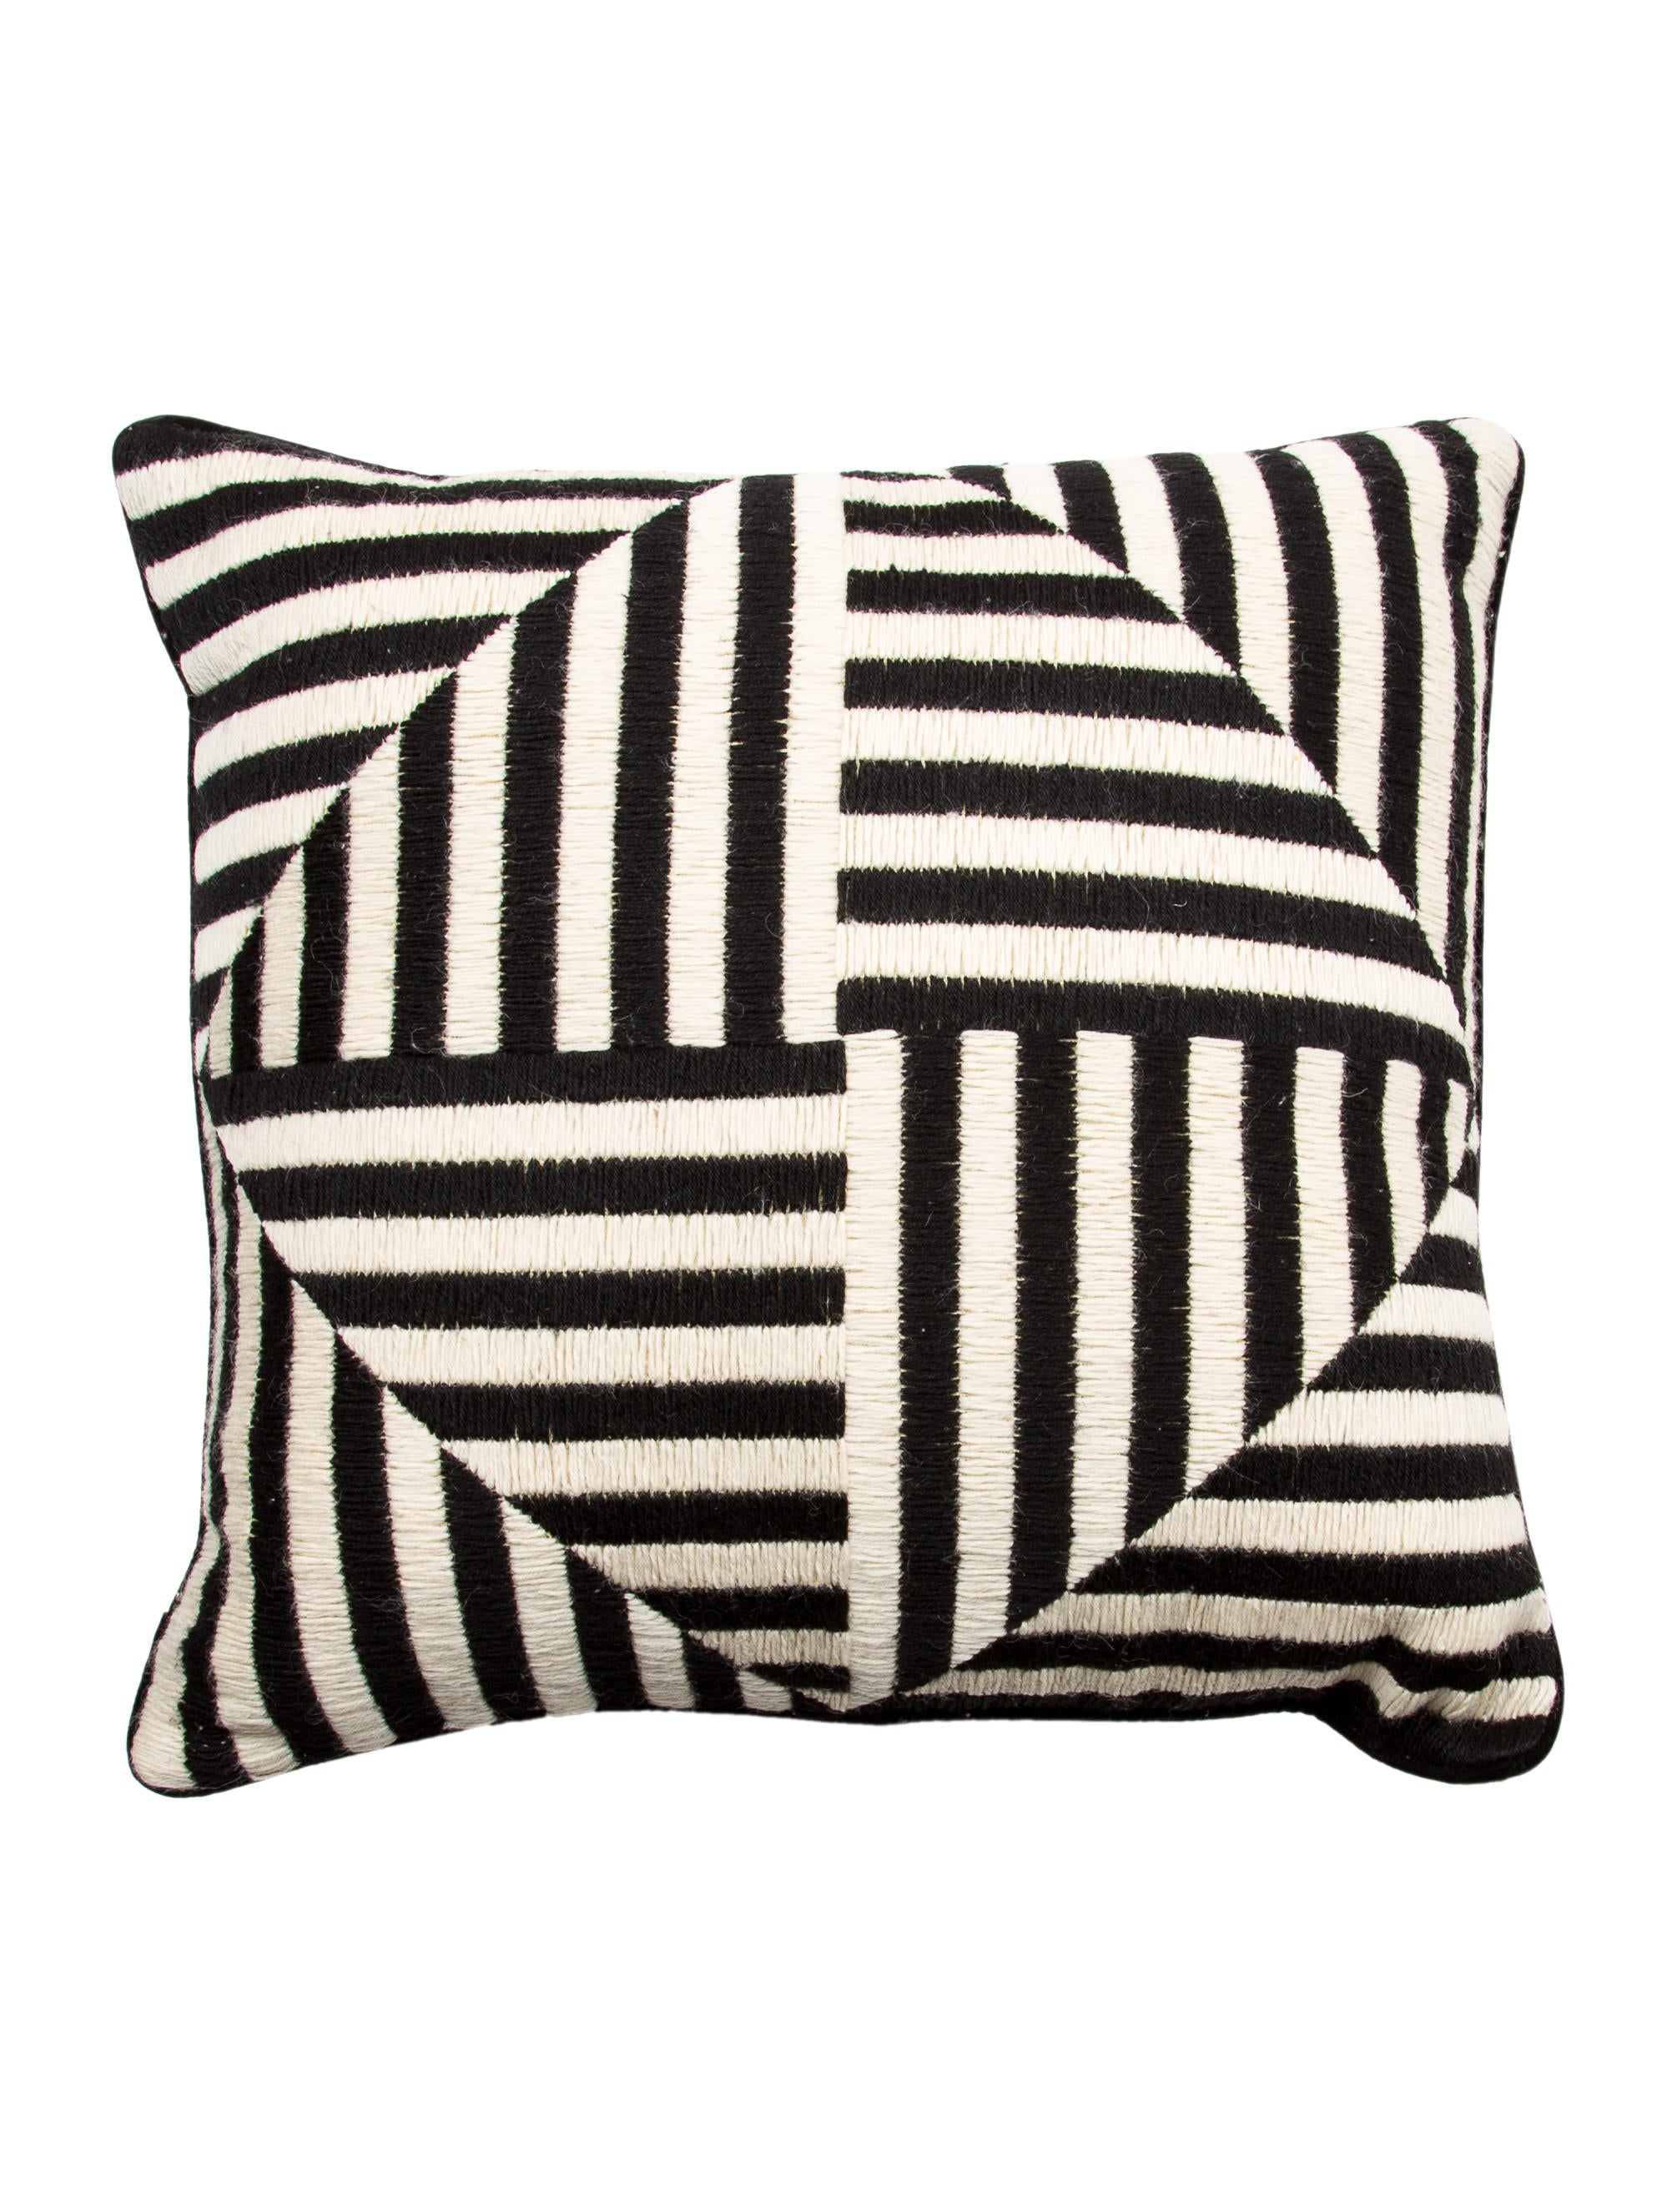 Throw Pillows Justice : Jonathan Adler Bargello Windmill Throw Pillow - Bedding And Bath - JTADL20525 The RealReal